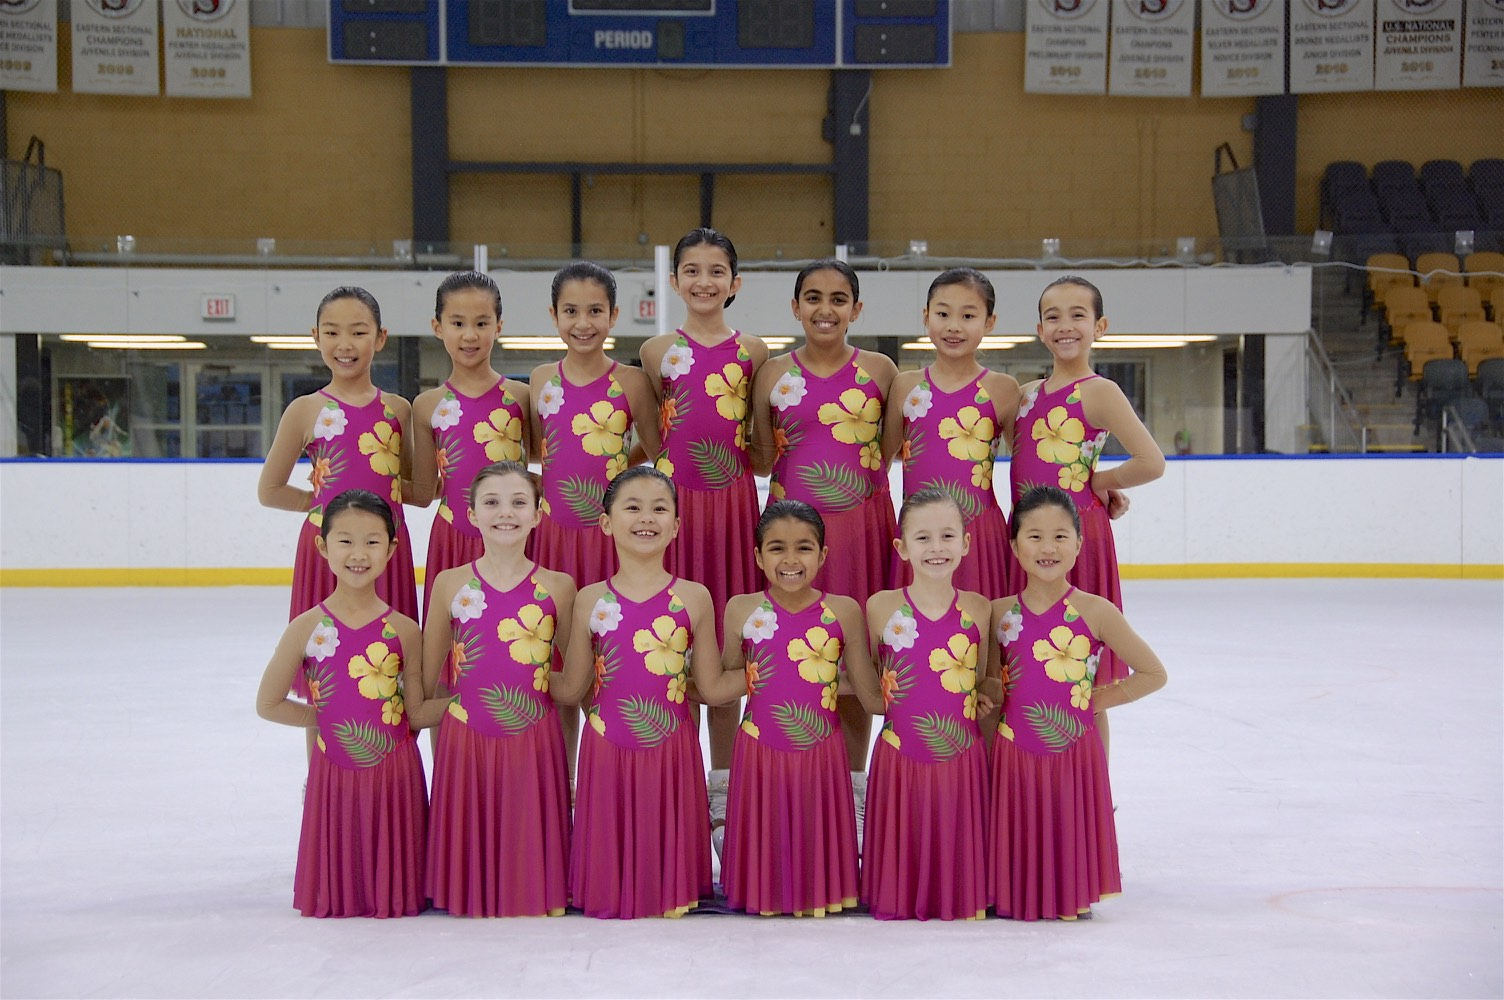 Synchroettes Preliminary 2019